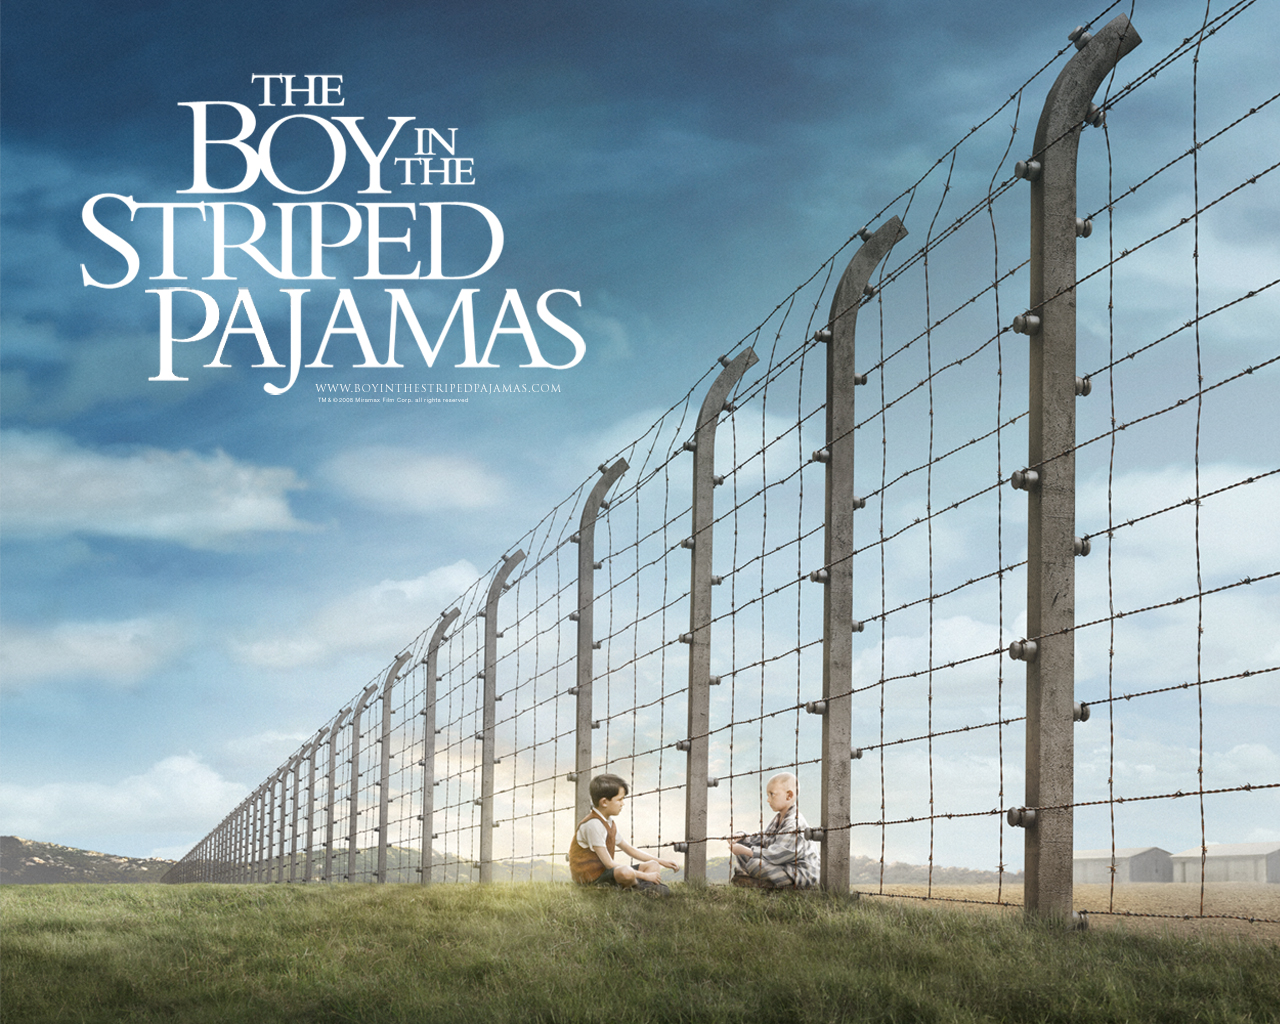 The Boy in the Striped Pajamas Compare and Contrast